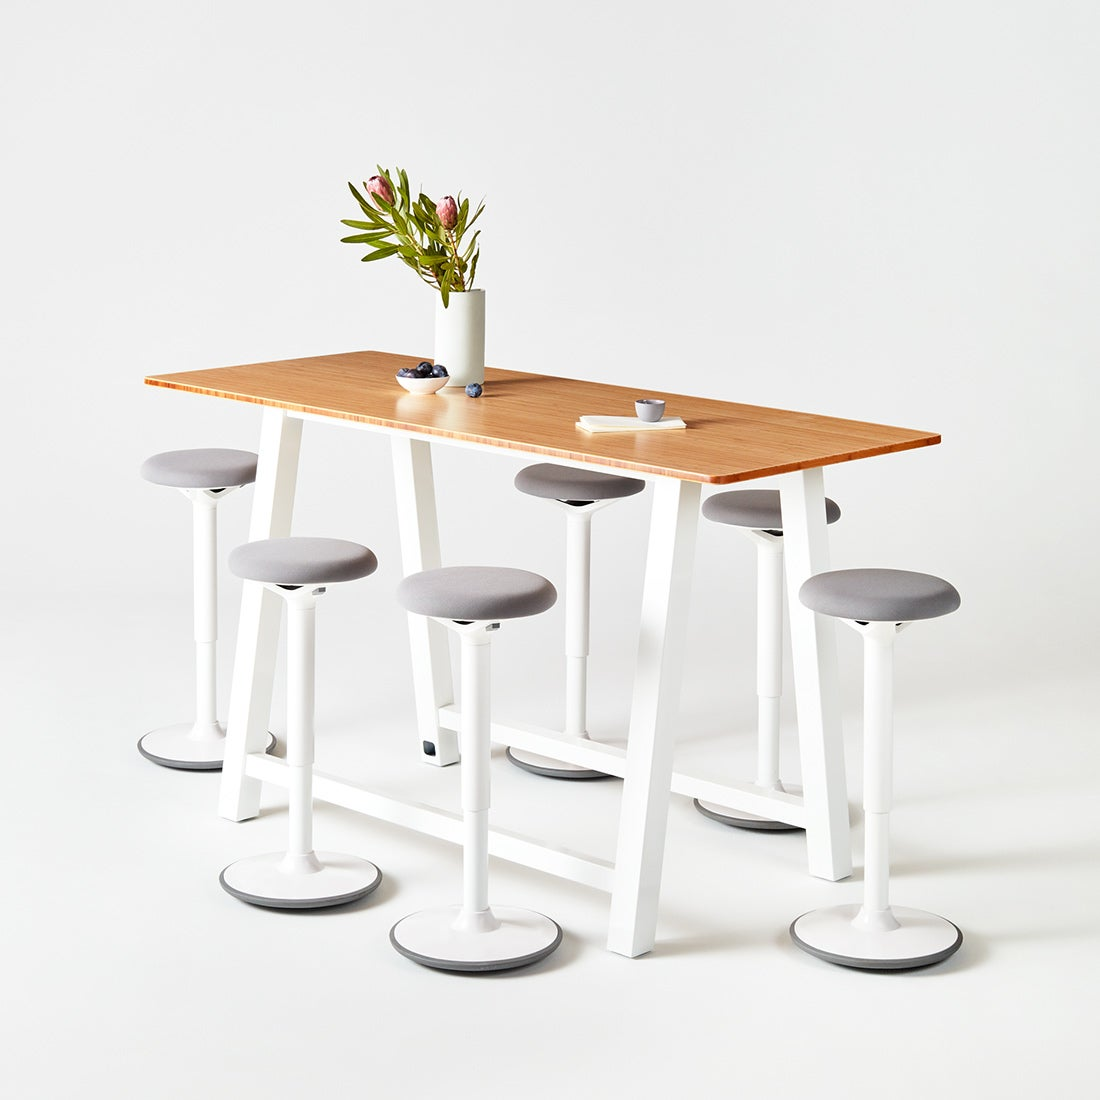 Colbe Bamboo Breakout table with White frame and Luna stools